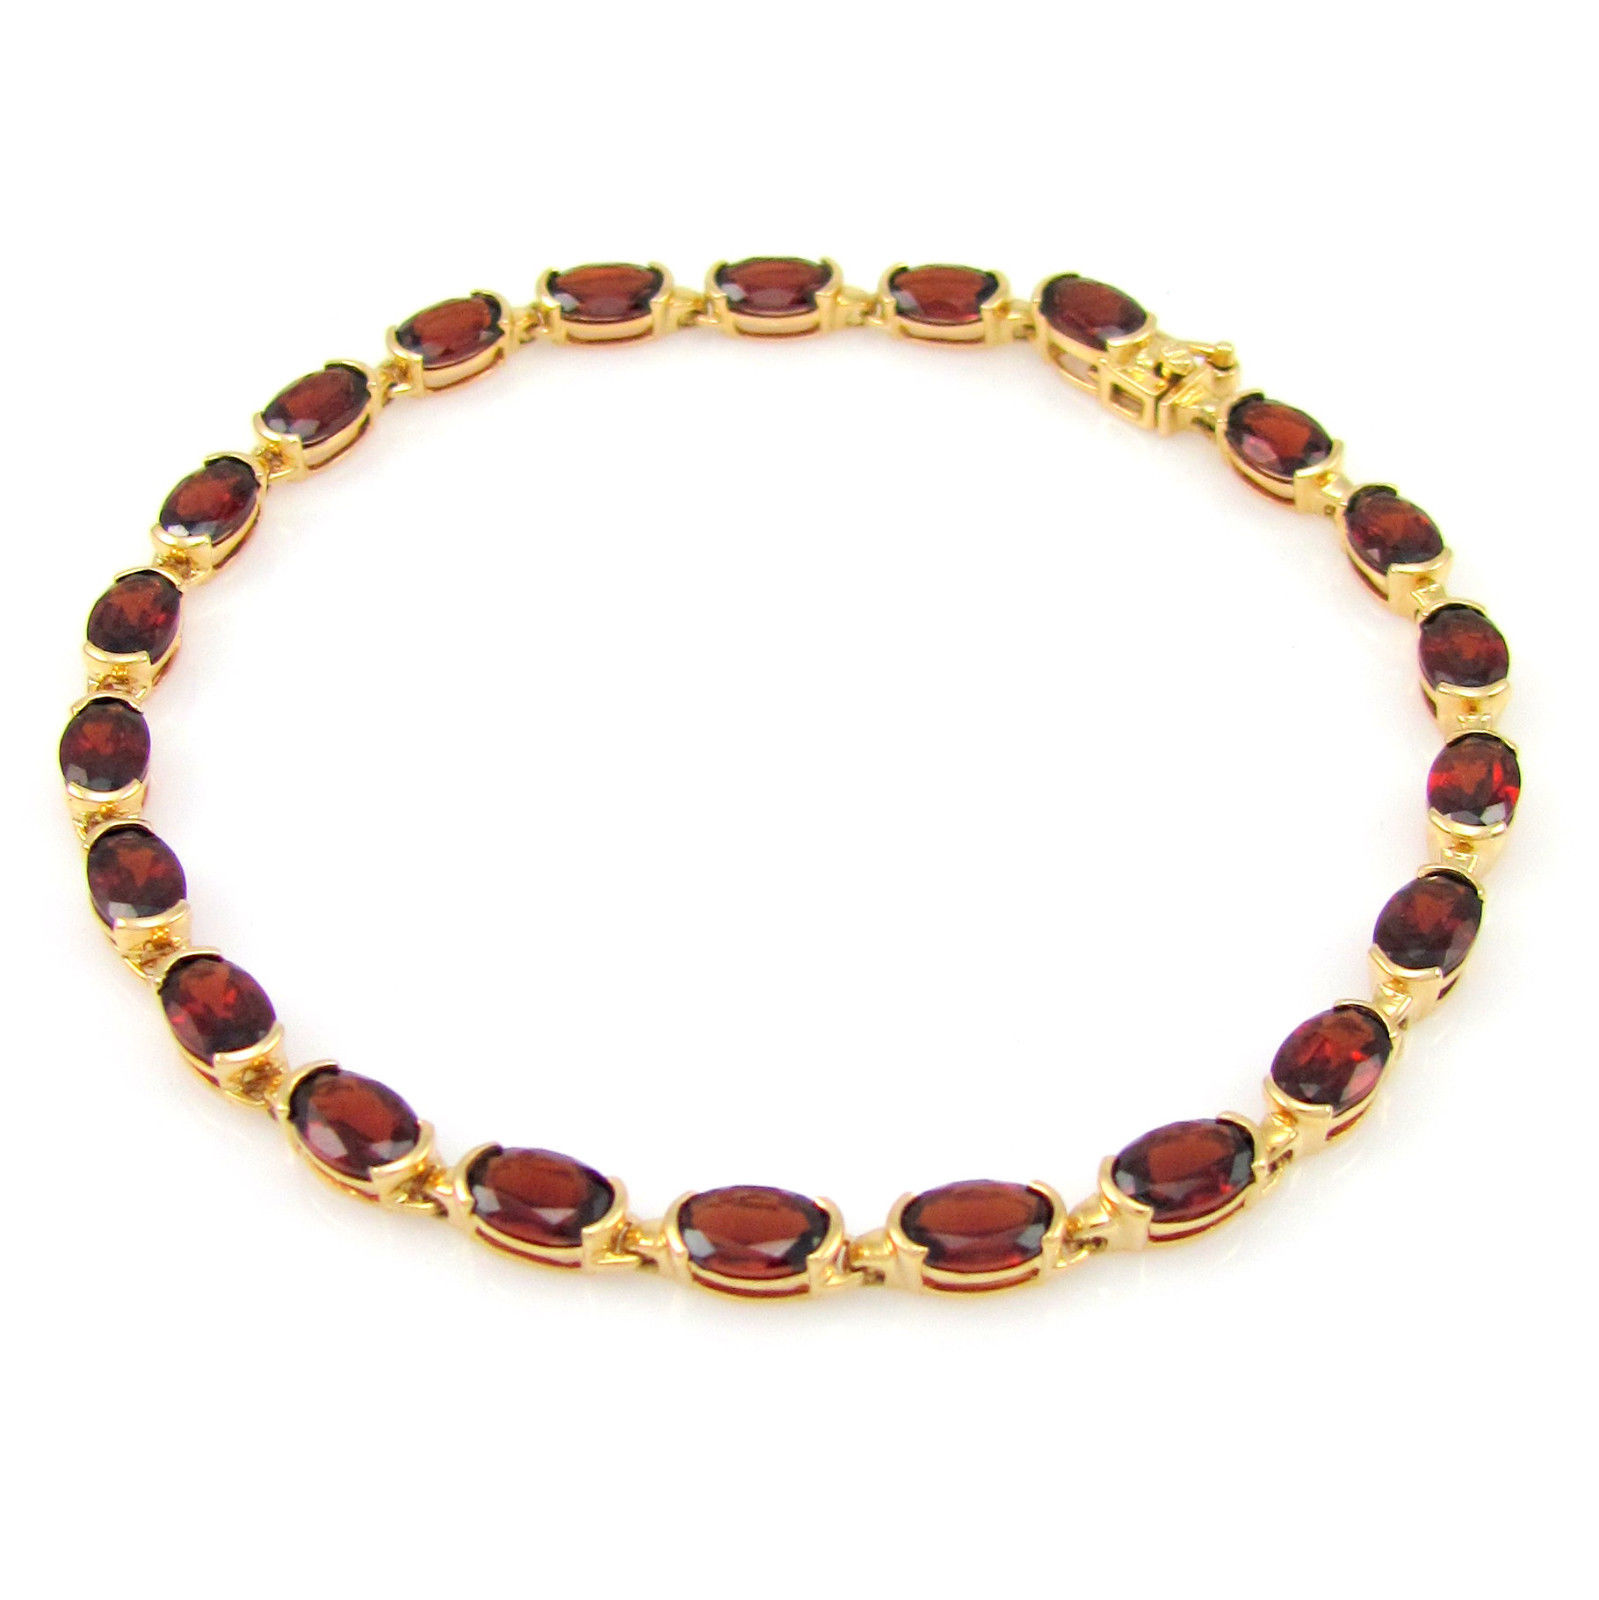 """""14k Yellow Gold & Oval Garnet Tennis Link Bracelet"""""" 1178825"